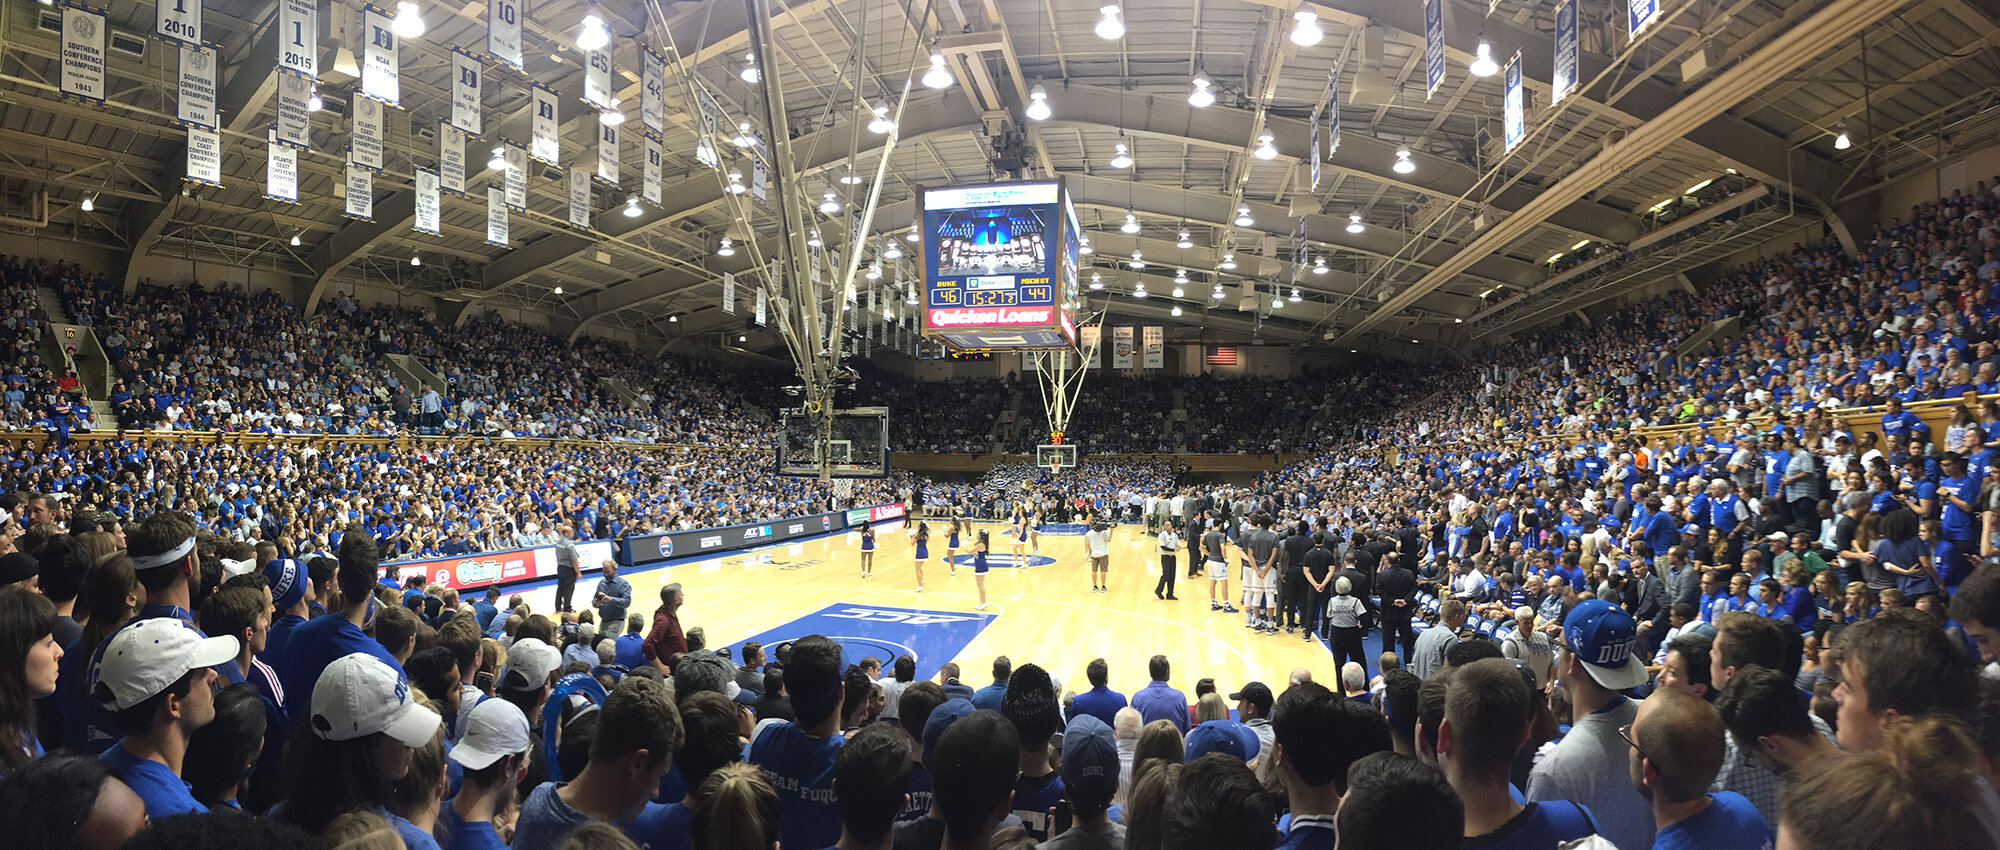 Duke basketball game at Cameron